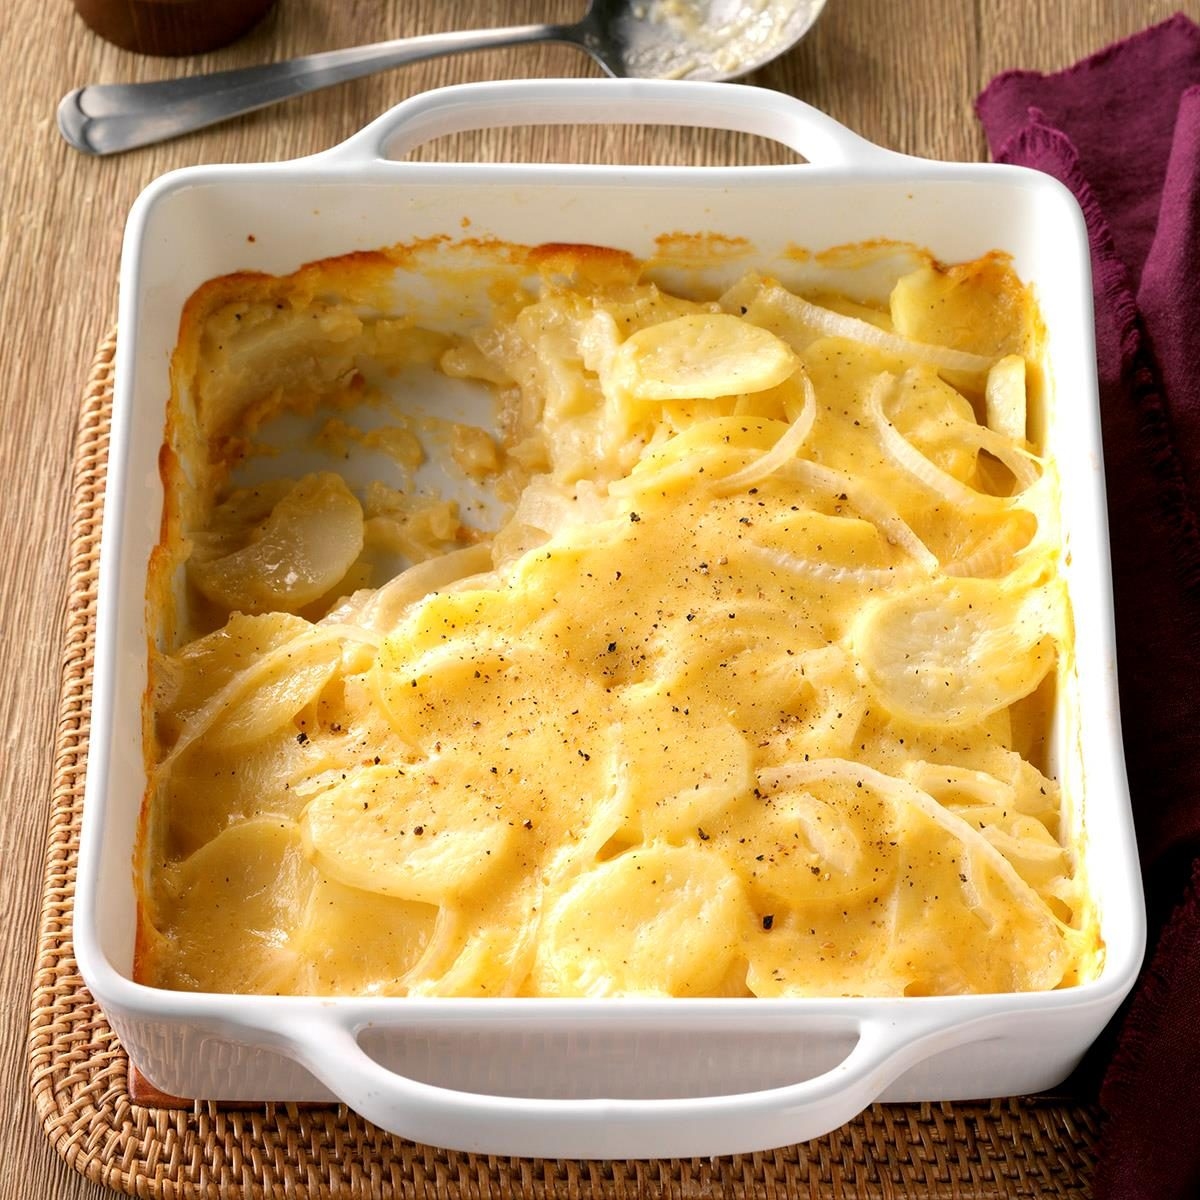 A steaming casserole of Never Fail Scalloped Potatoes